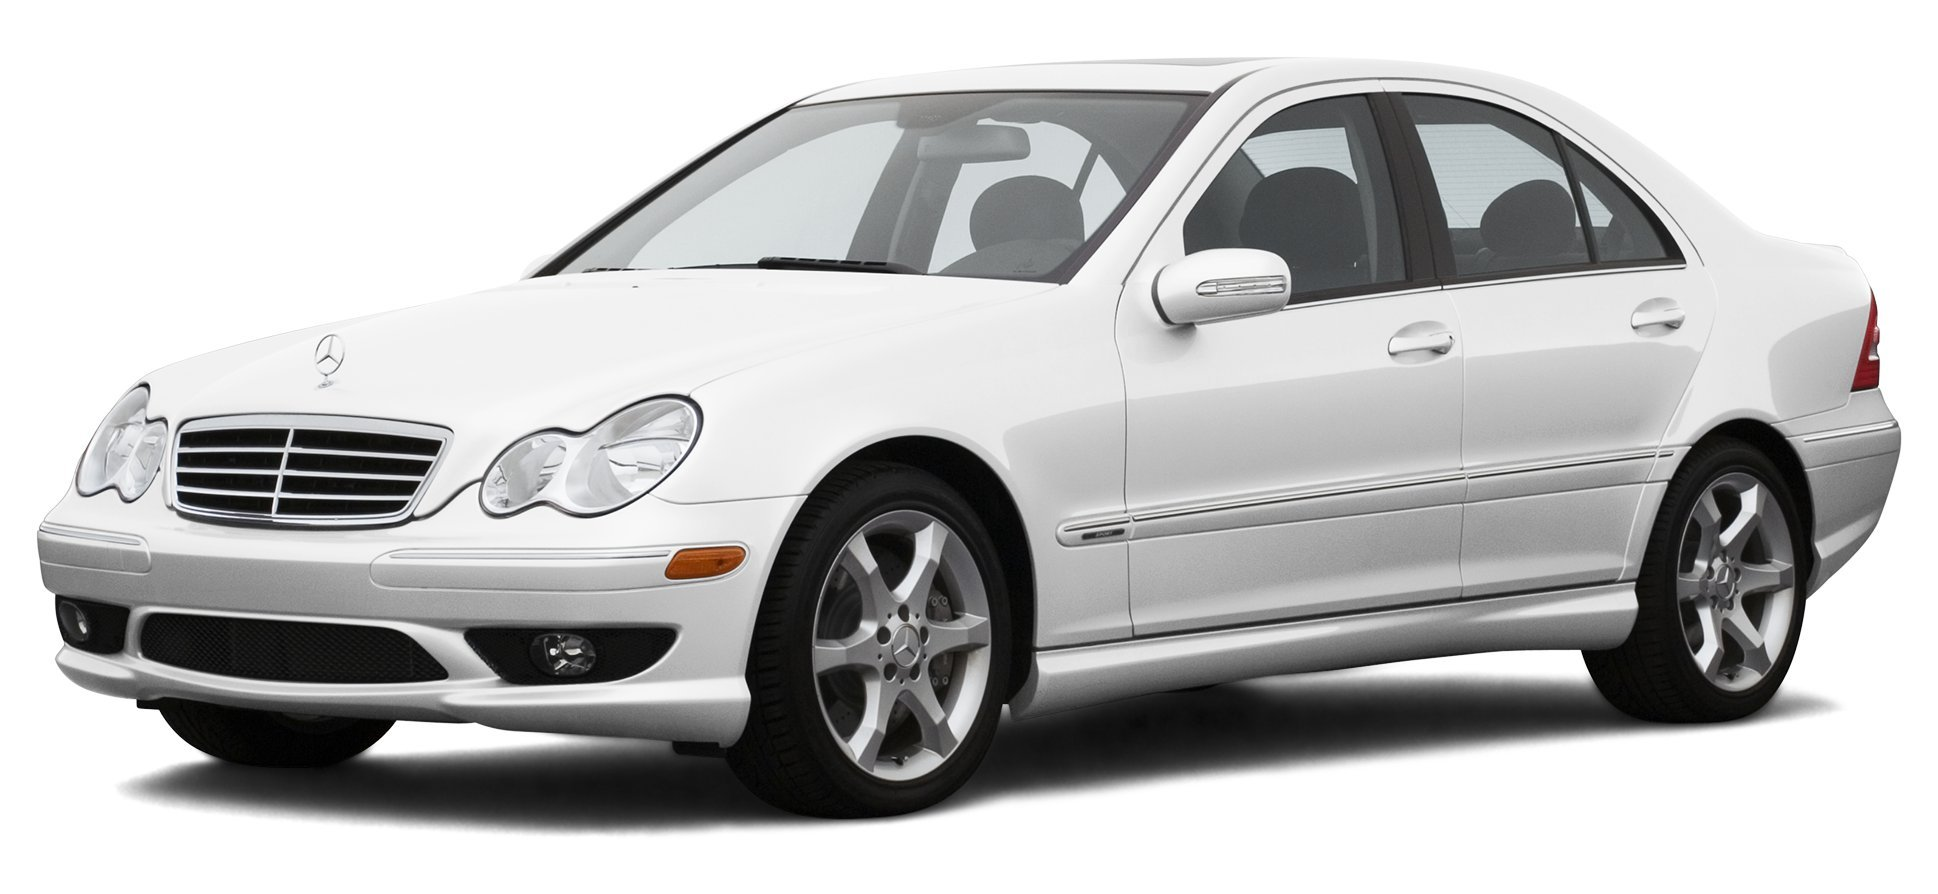 Amazon.com: 2007 Mercedes-Benz C230 Reviews, Images, And